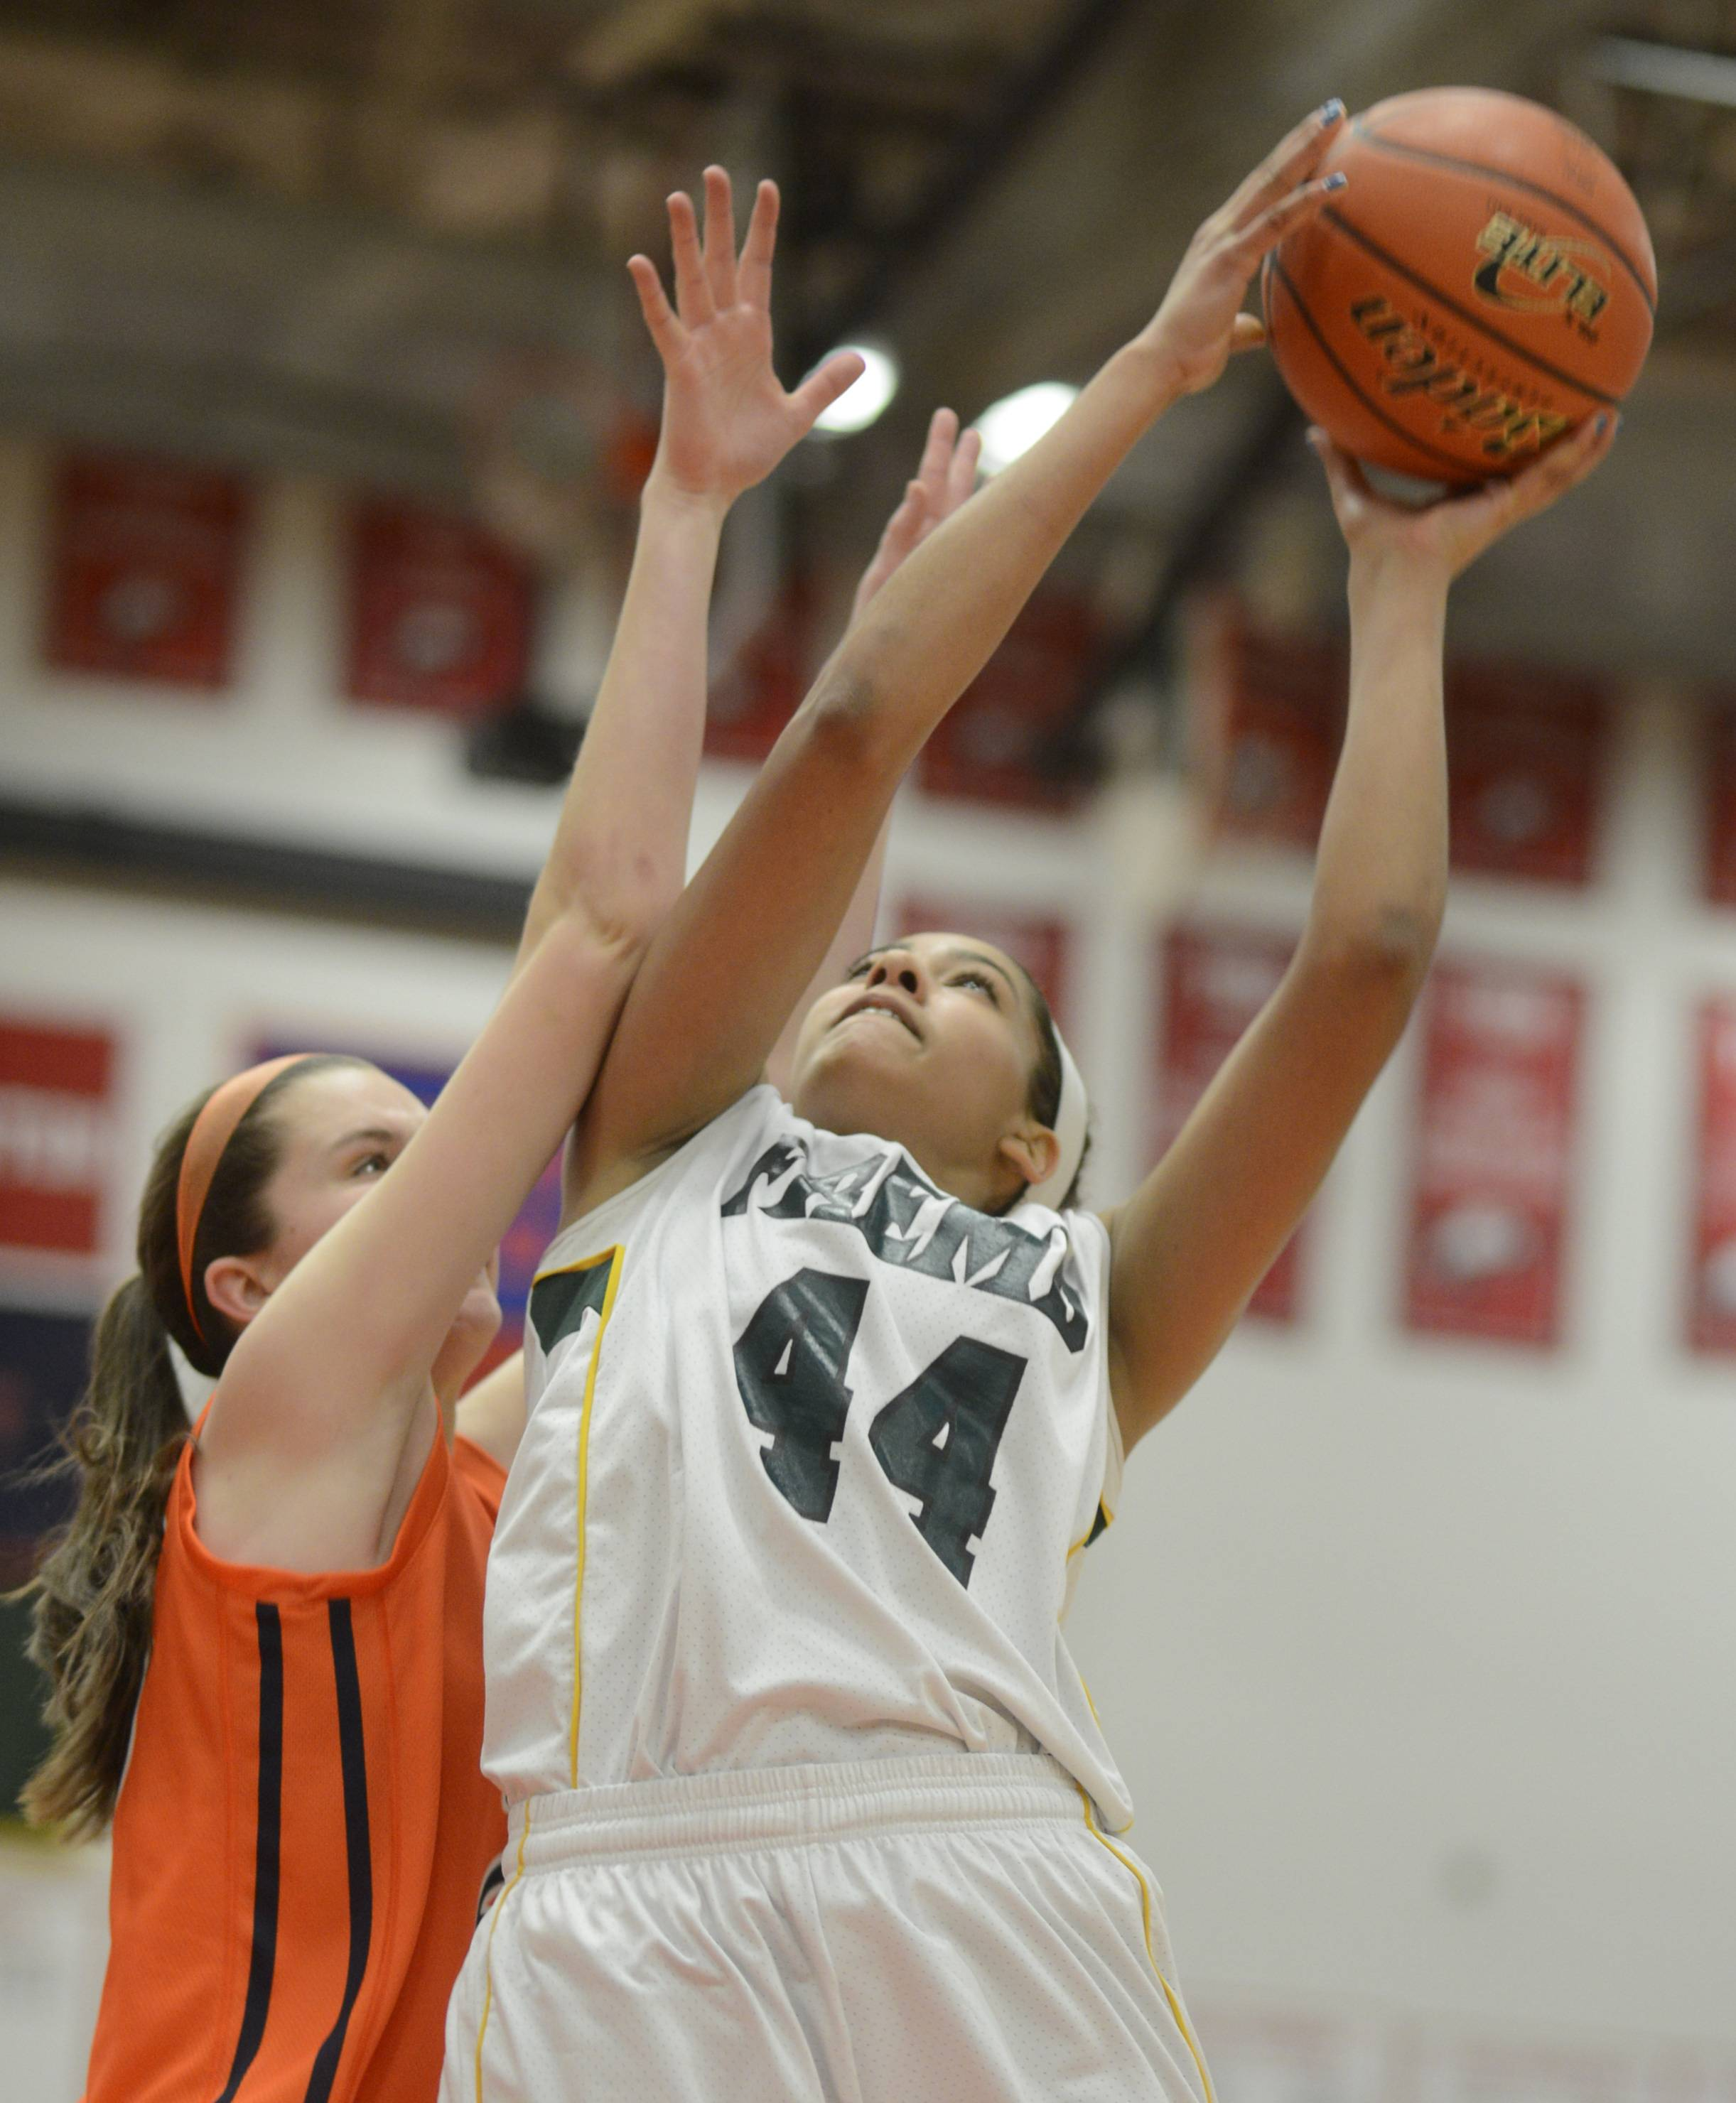 Images from the Fremd vs. Buffalo Grove IHSA Class 4A sectional semifinal girls basketball game on Tuesday, February 25 in Barrington.